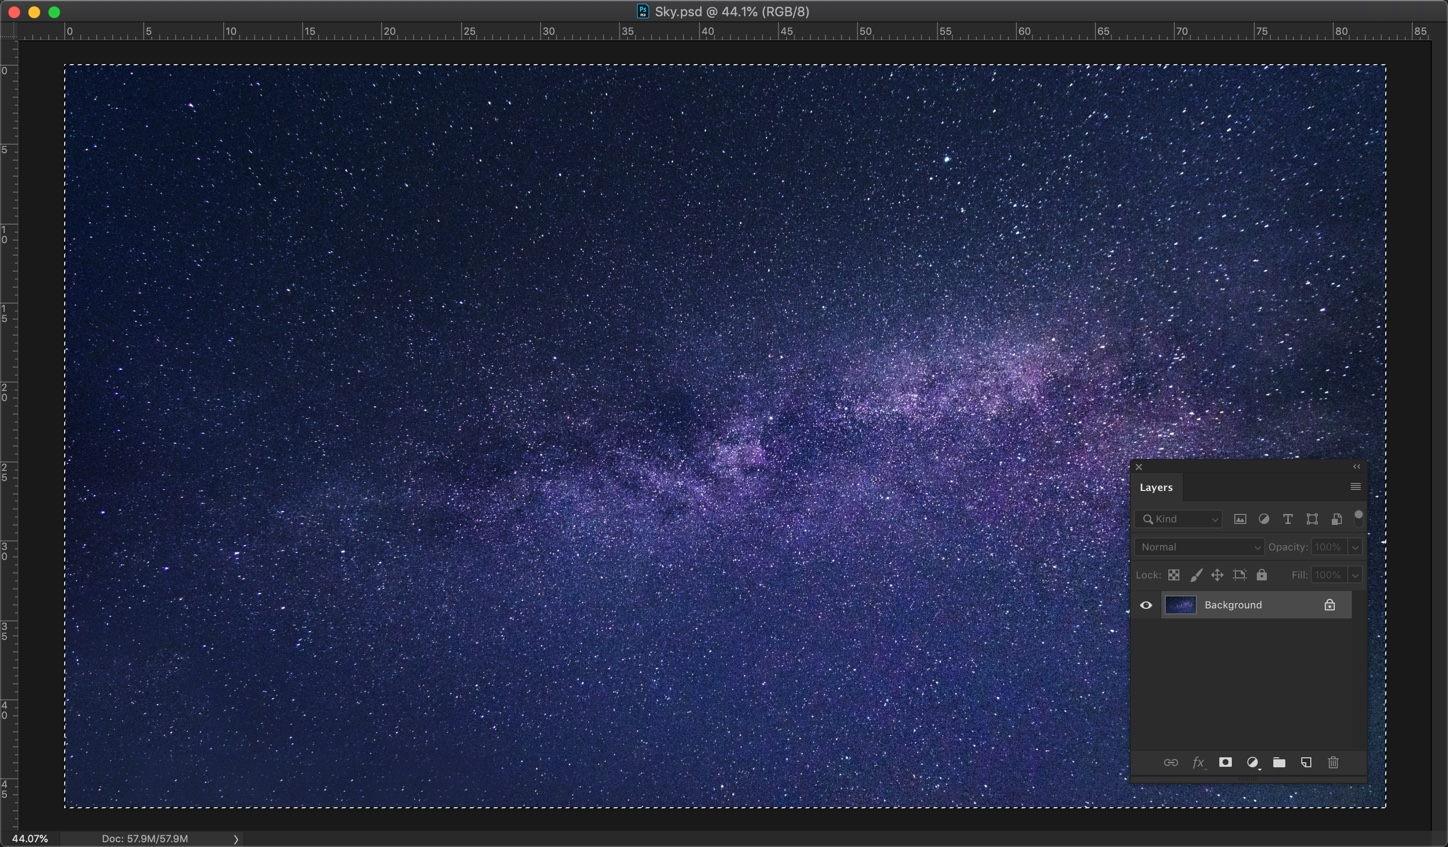 2-1 - How to add stars to the sky in Photoshop